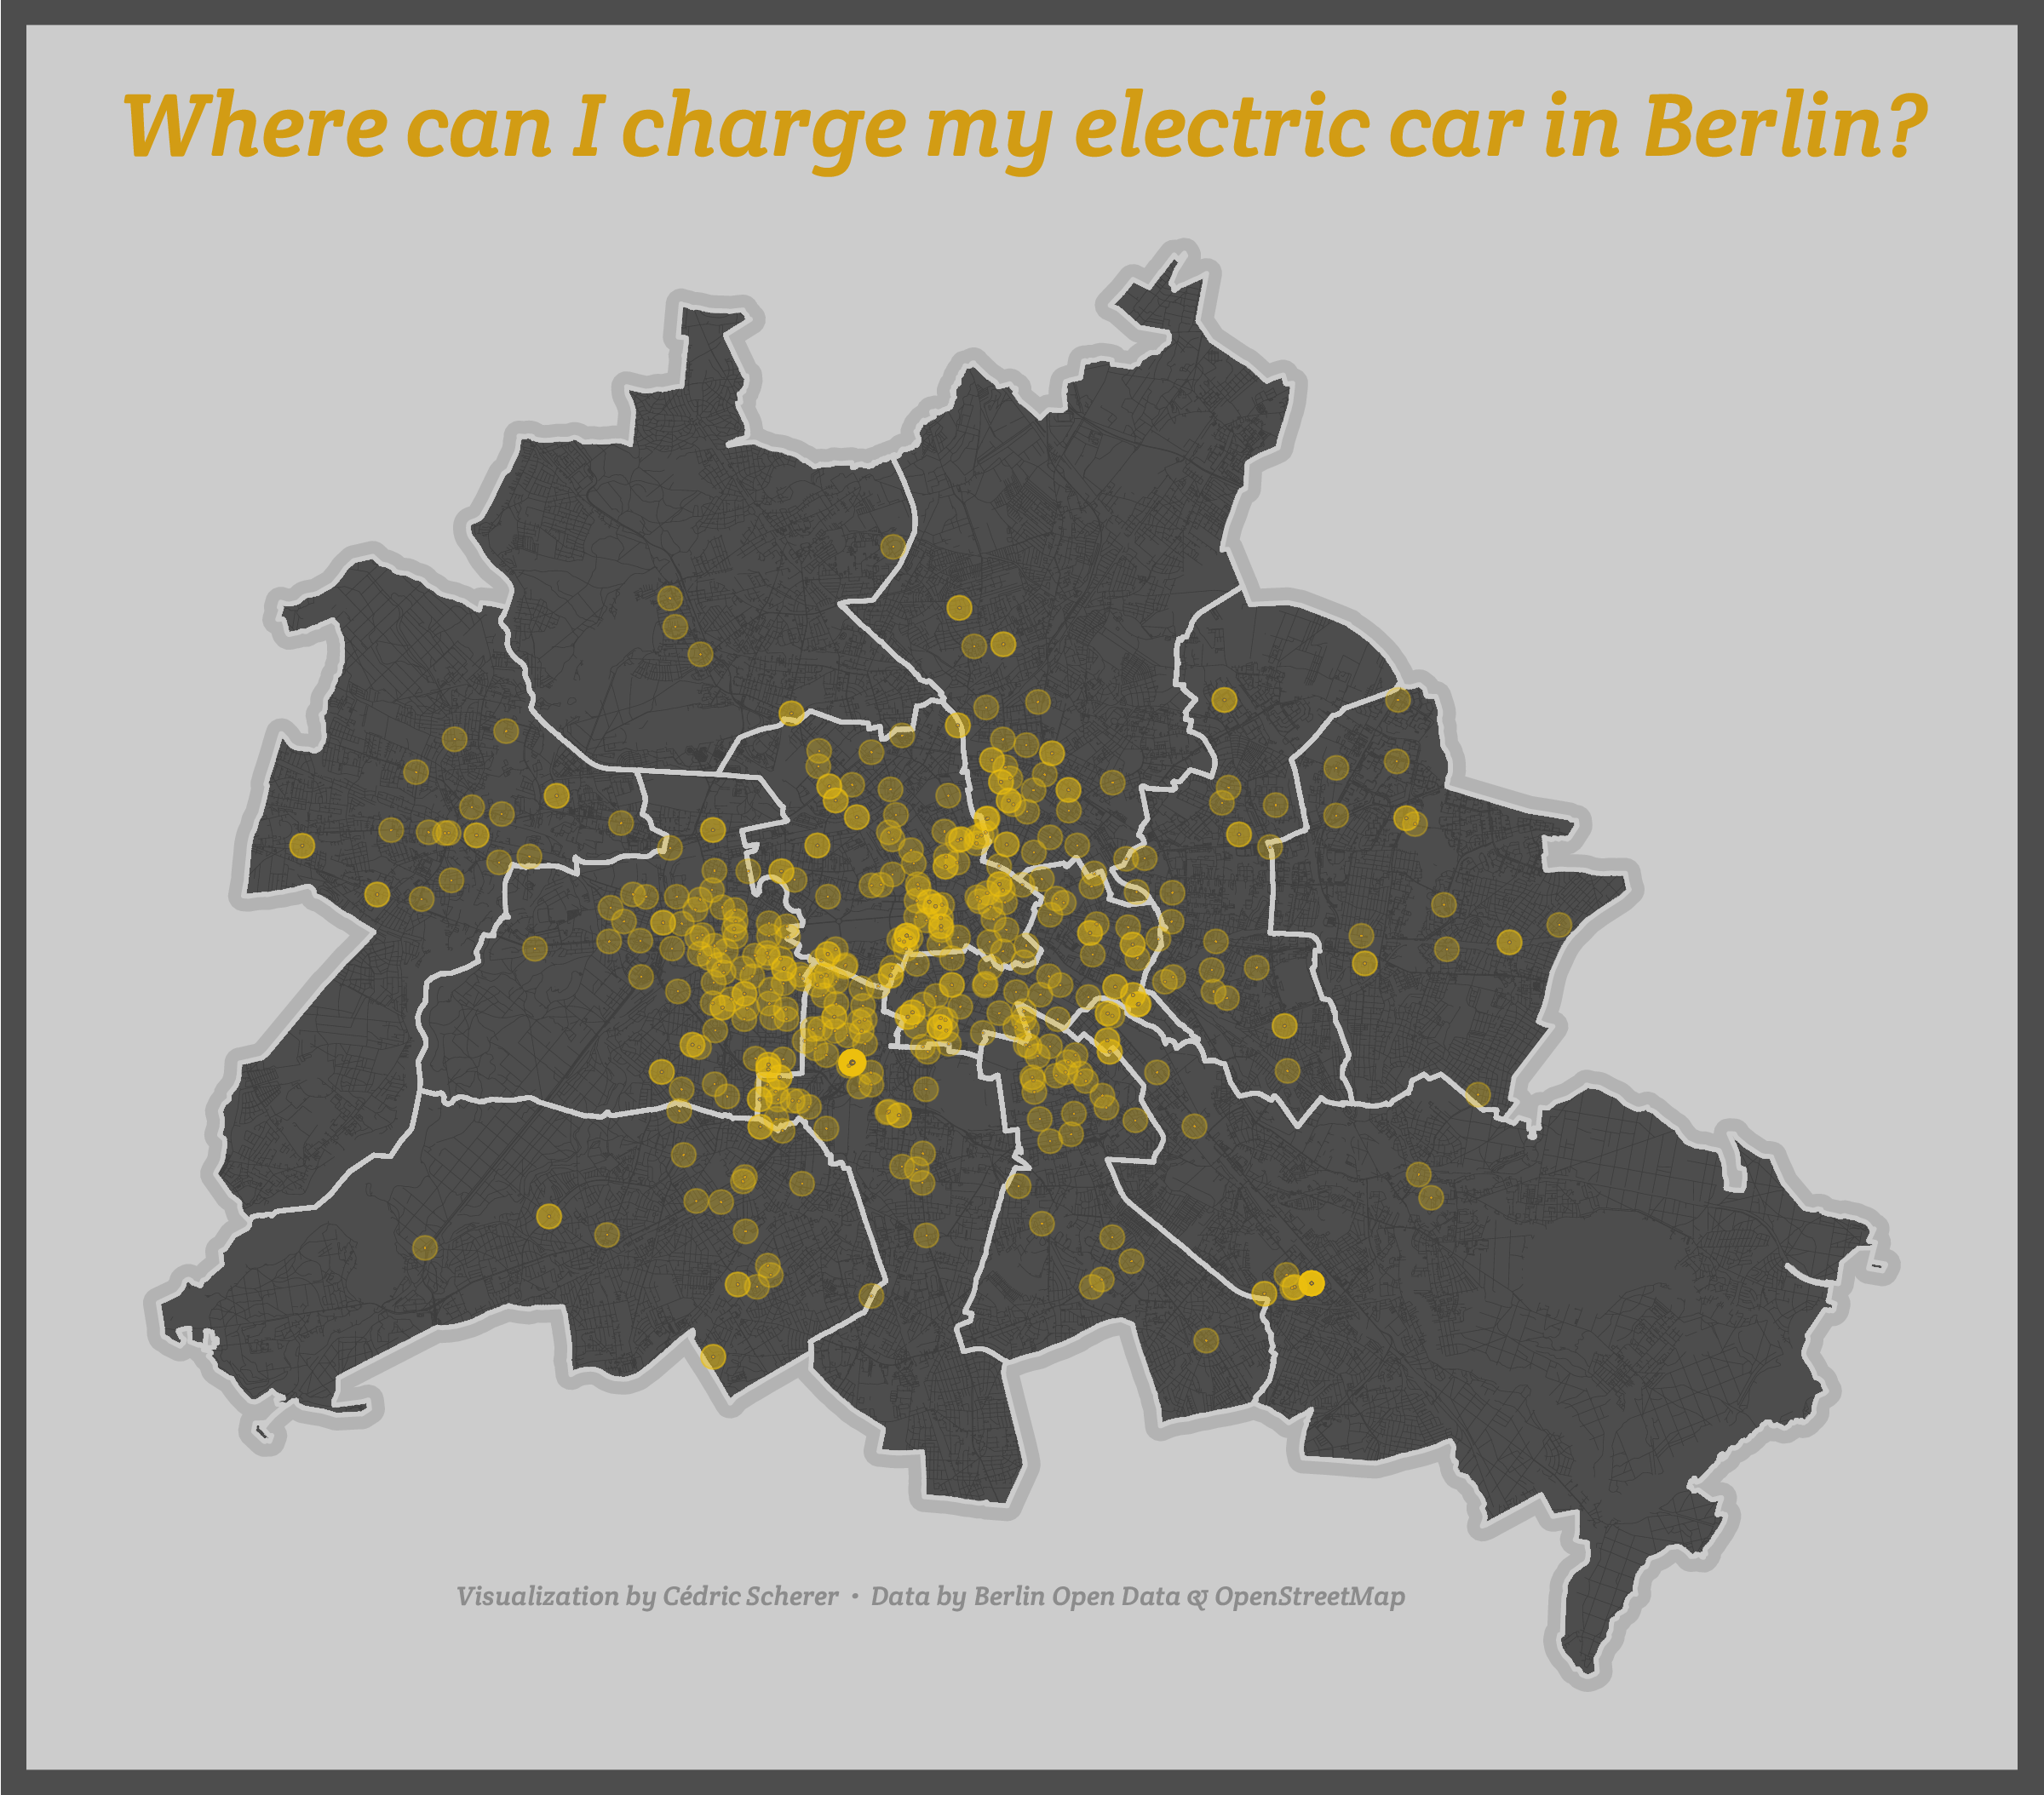 ./Day27_Resources/Resources_eMobilityBerlin.png